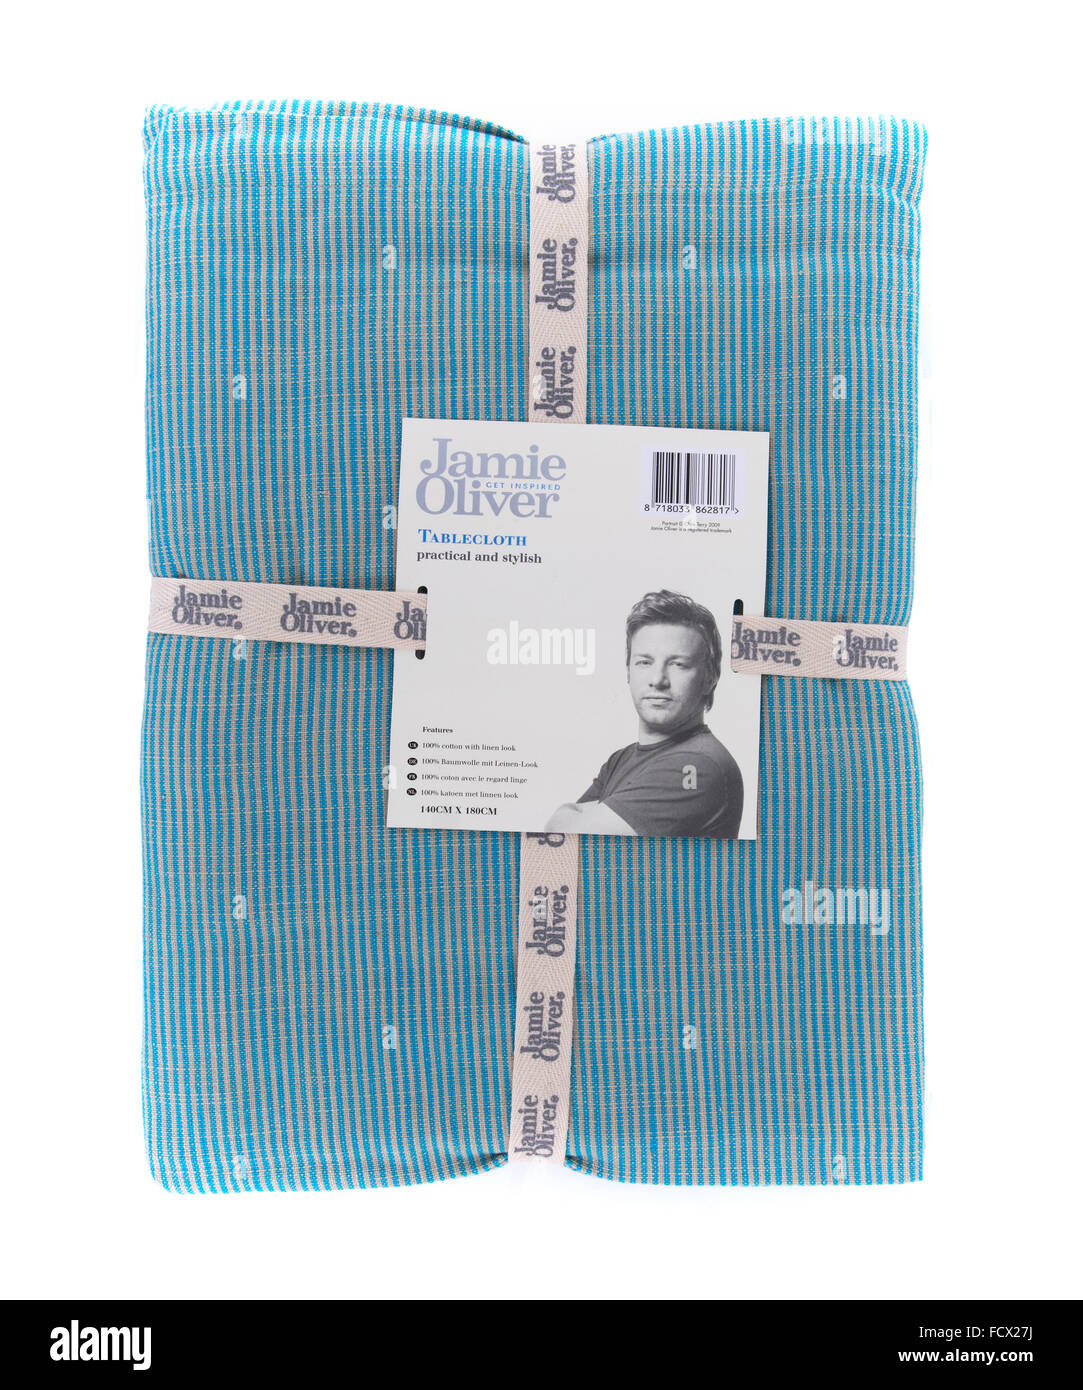 Jamie Oliver Vintage Blue Tablecloth on a white Background - Stock Image